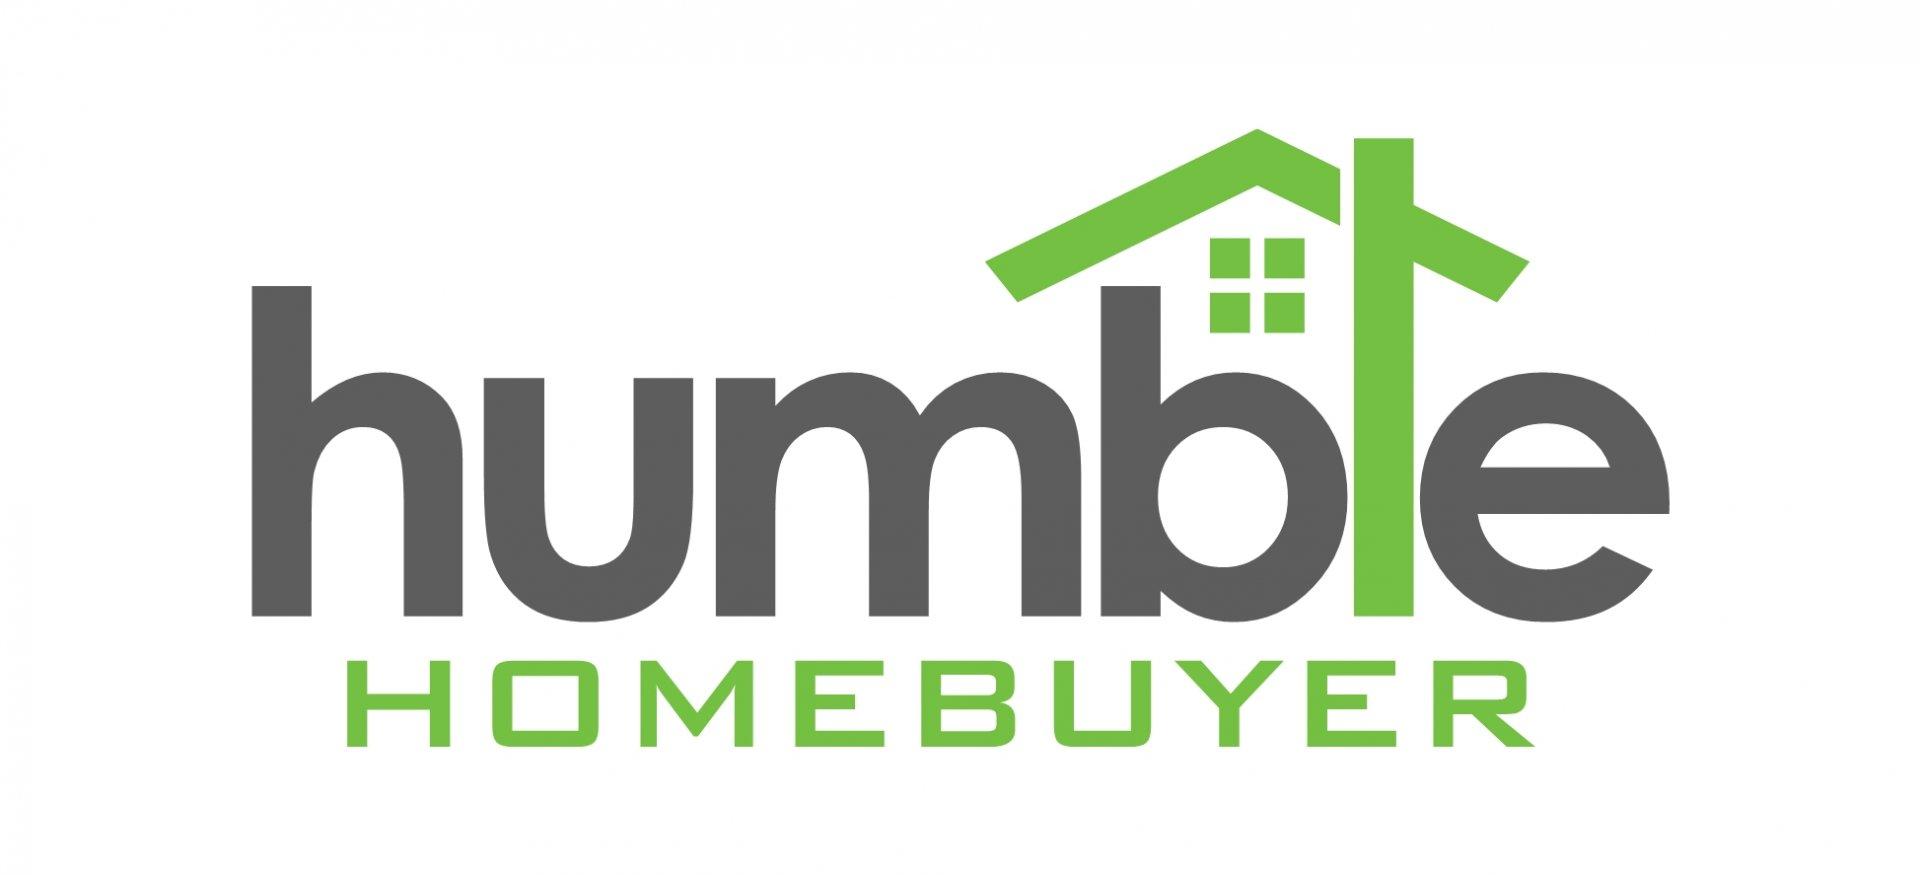 Humble Homebuyer  logo